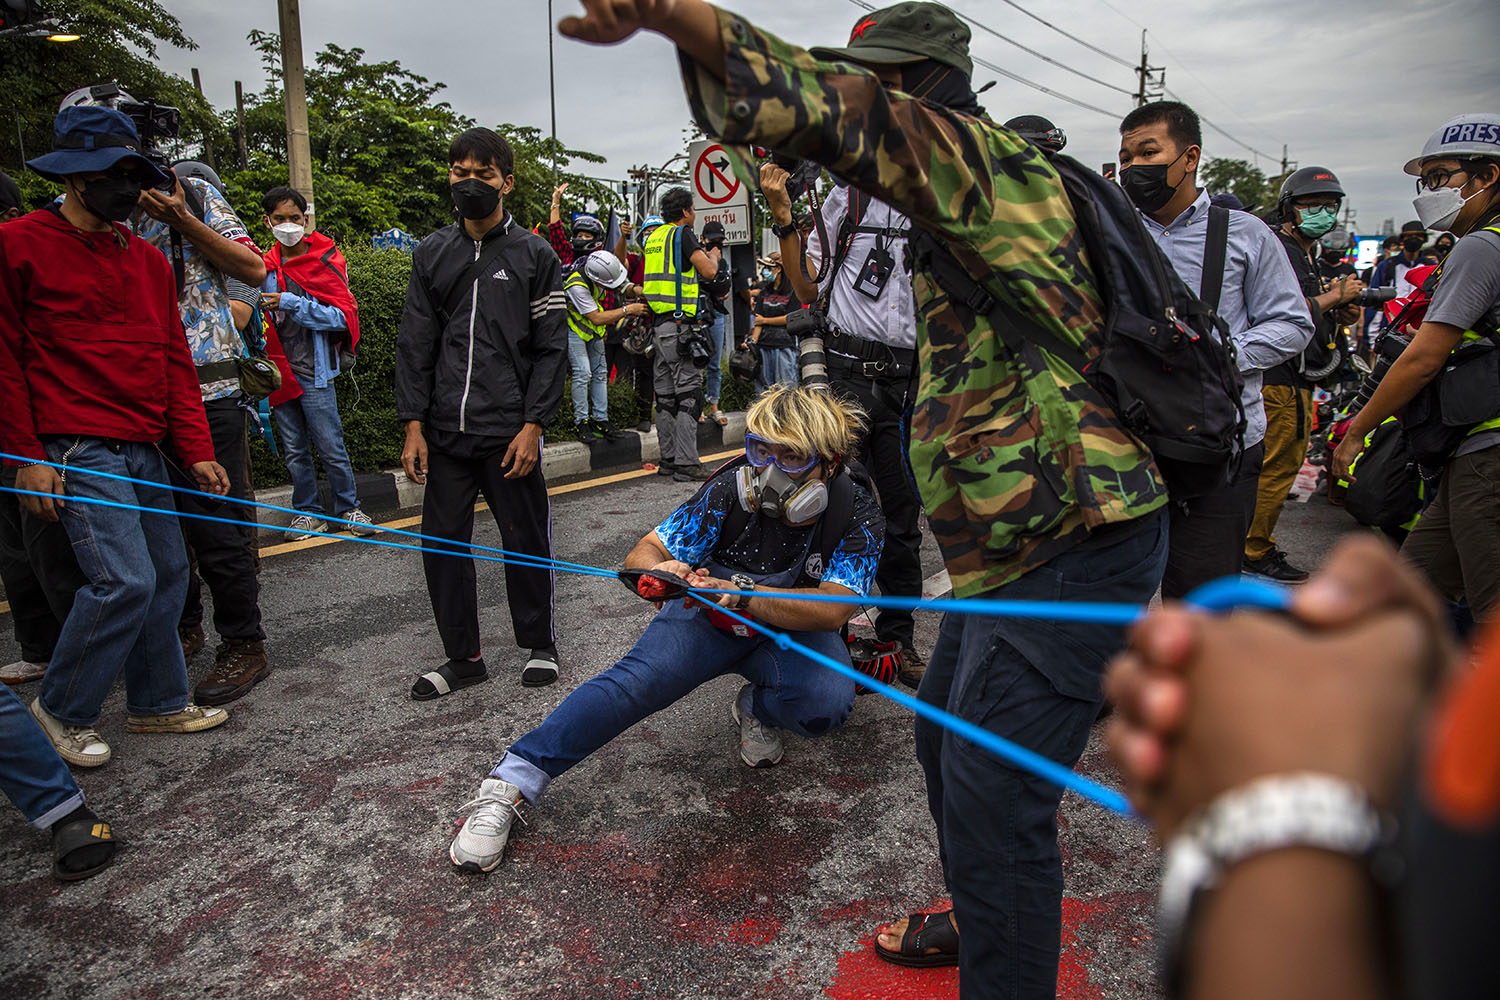 Anti-government protesters launch paint balloons at Thai police during a rally on Sept. 25 in Bangkok. Lauren DeCicca/Getty Images